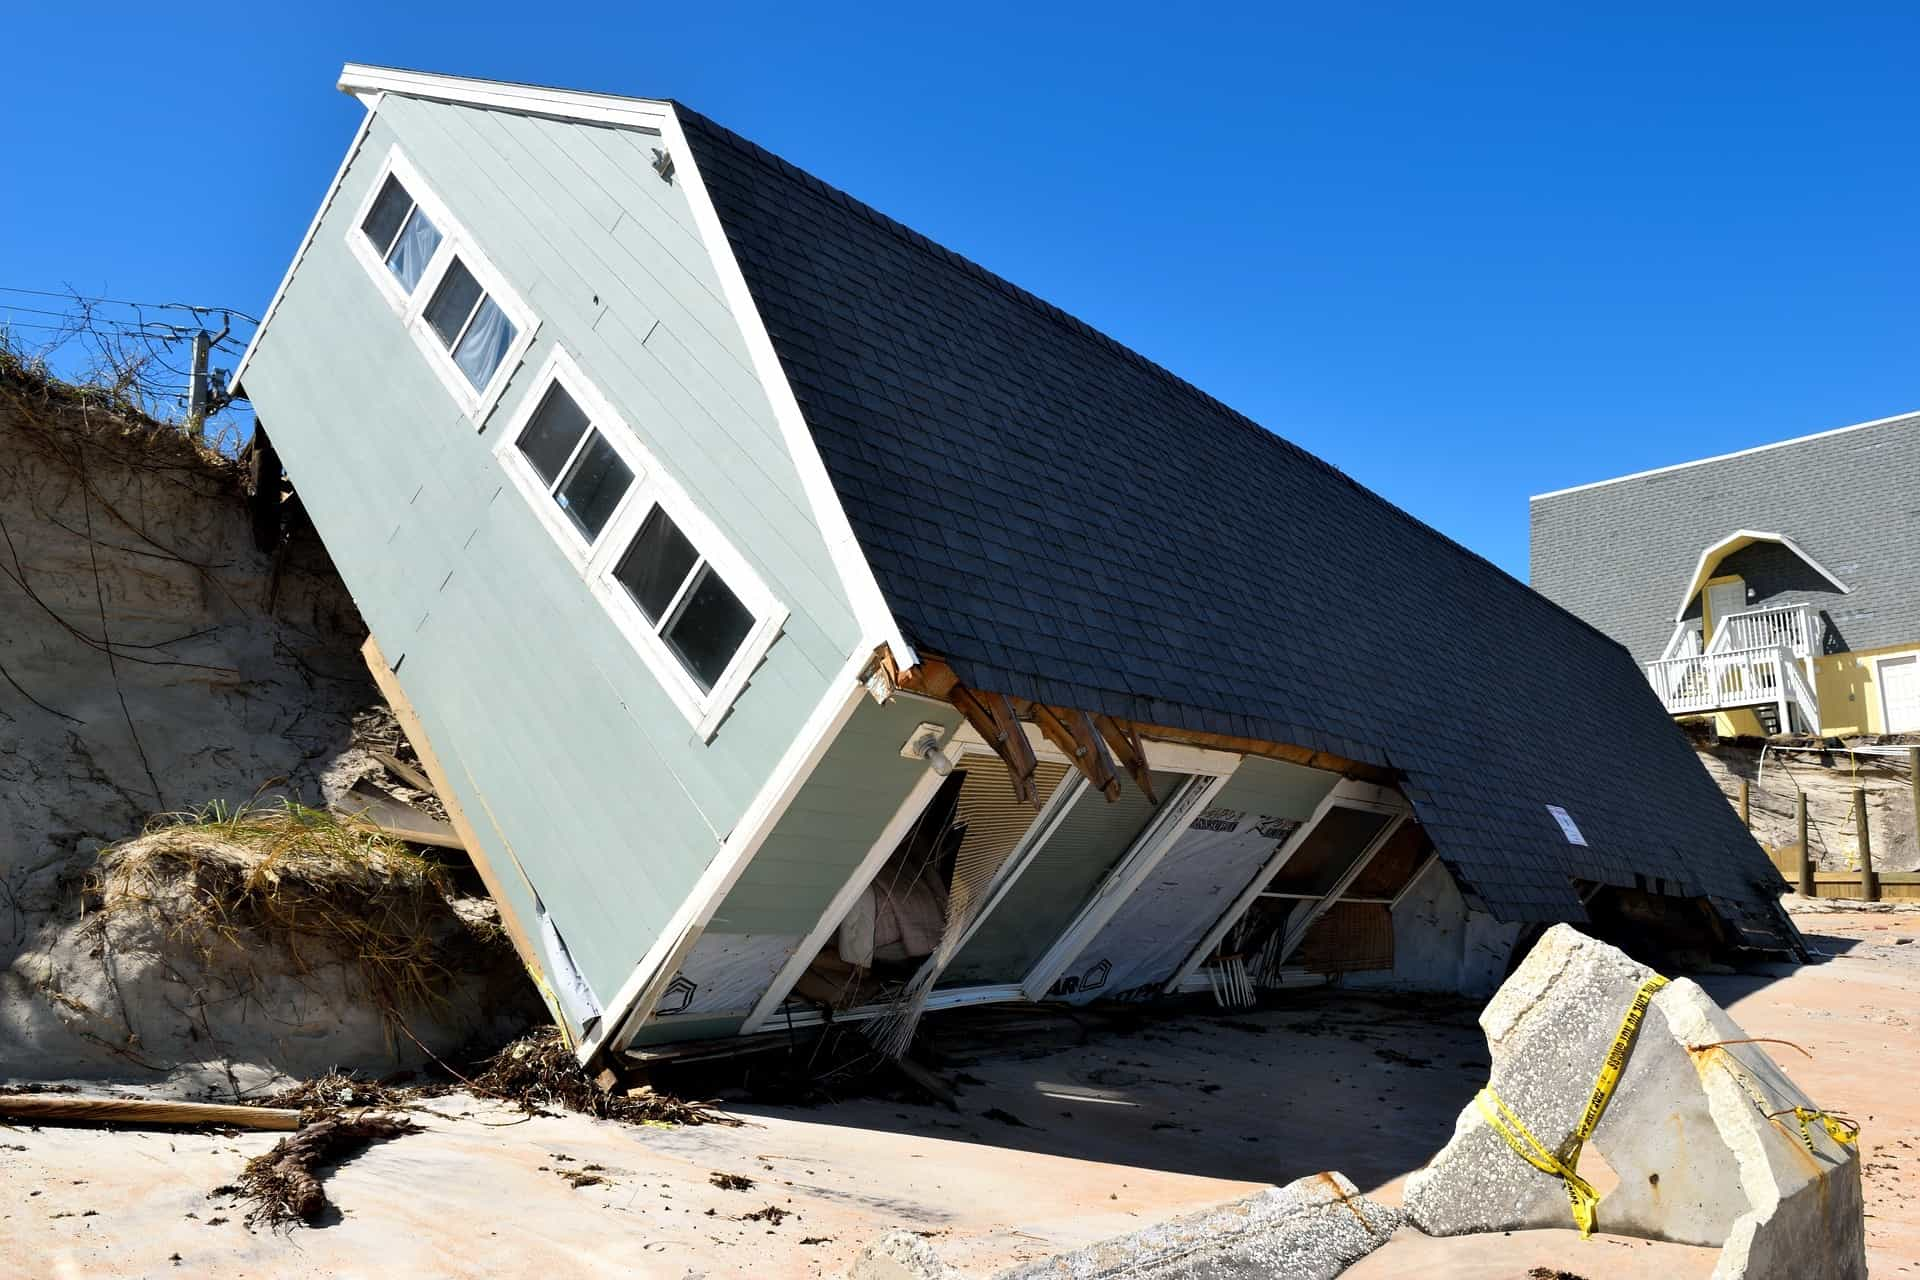 flat house knocked over by high winds during a hurricane